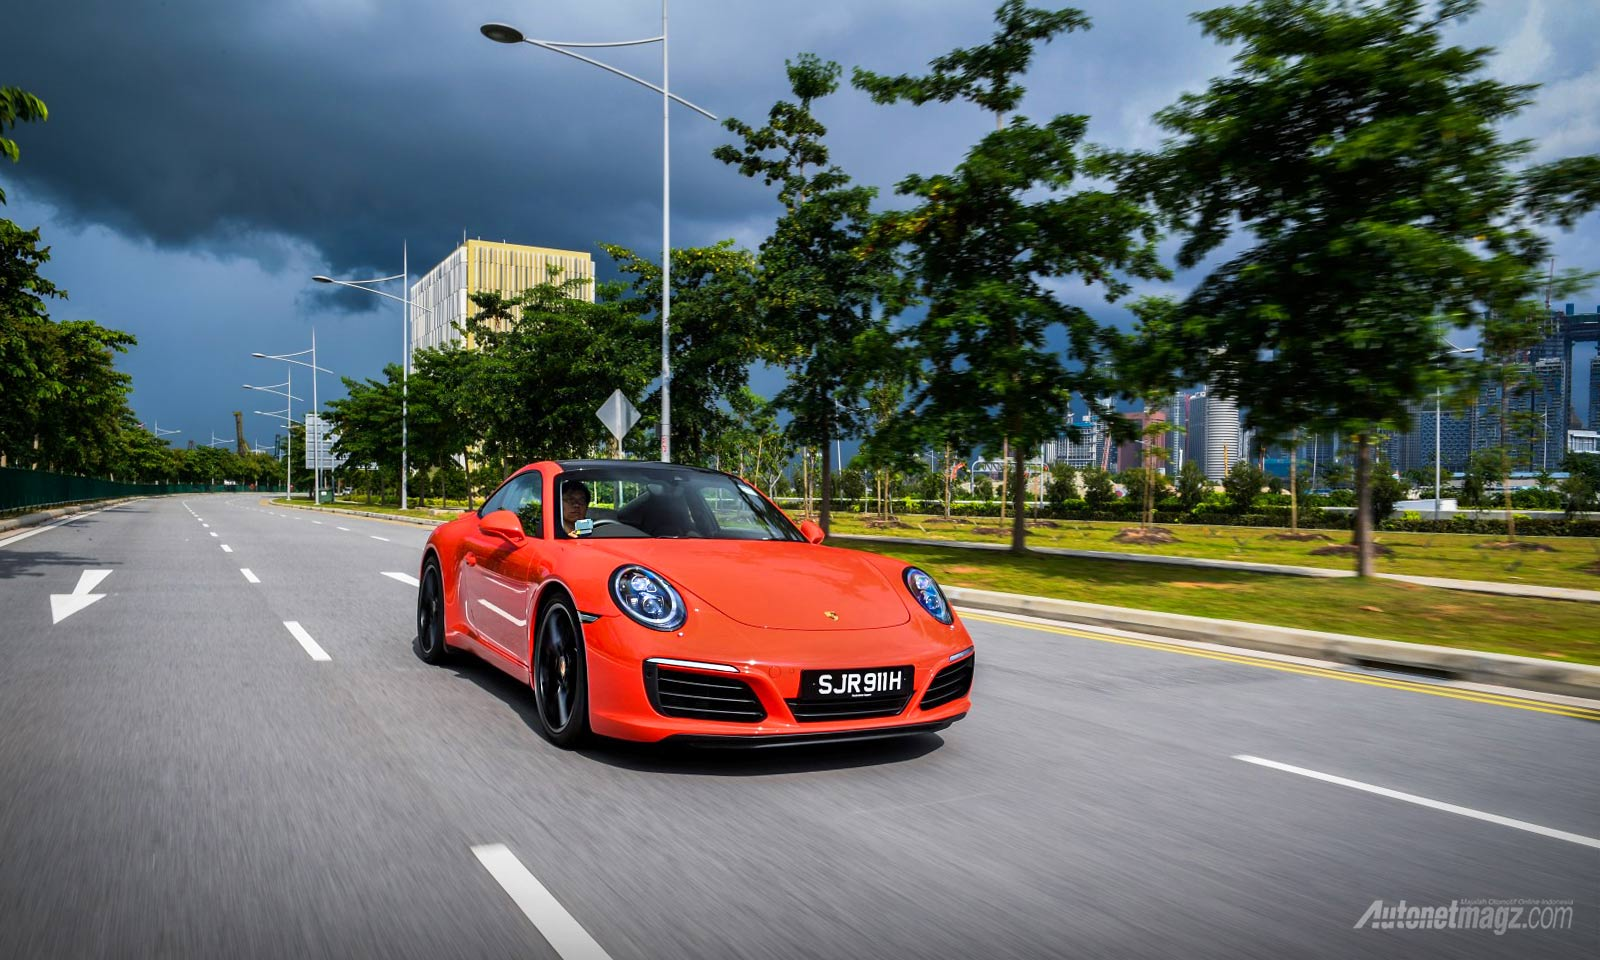 Wallpaper sportscar supercar Porsche 911 Carrera S 2016